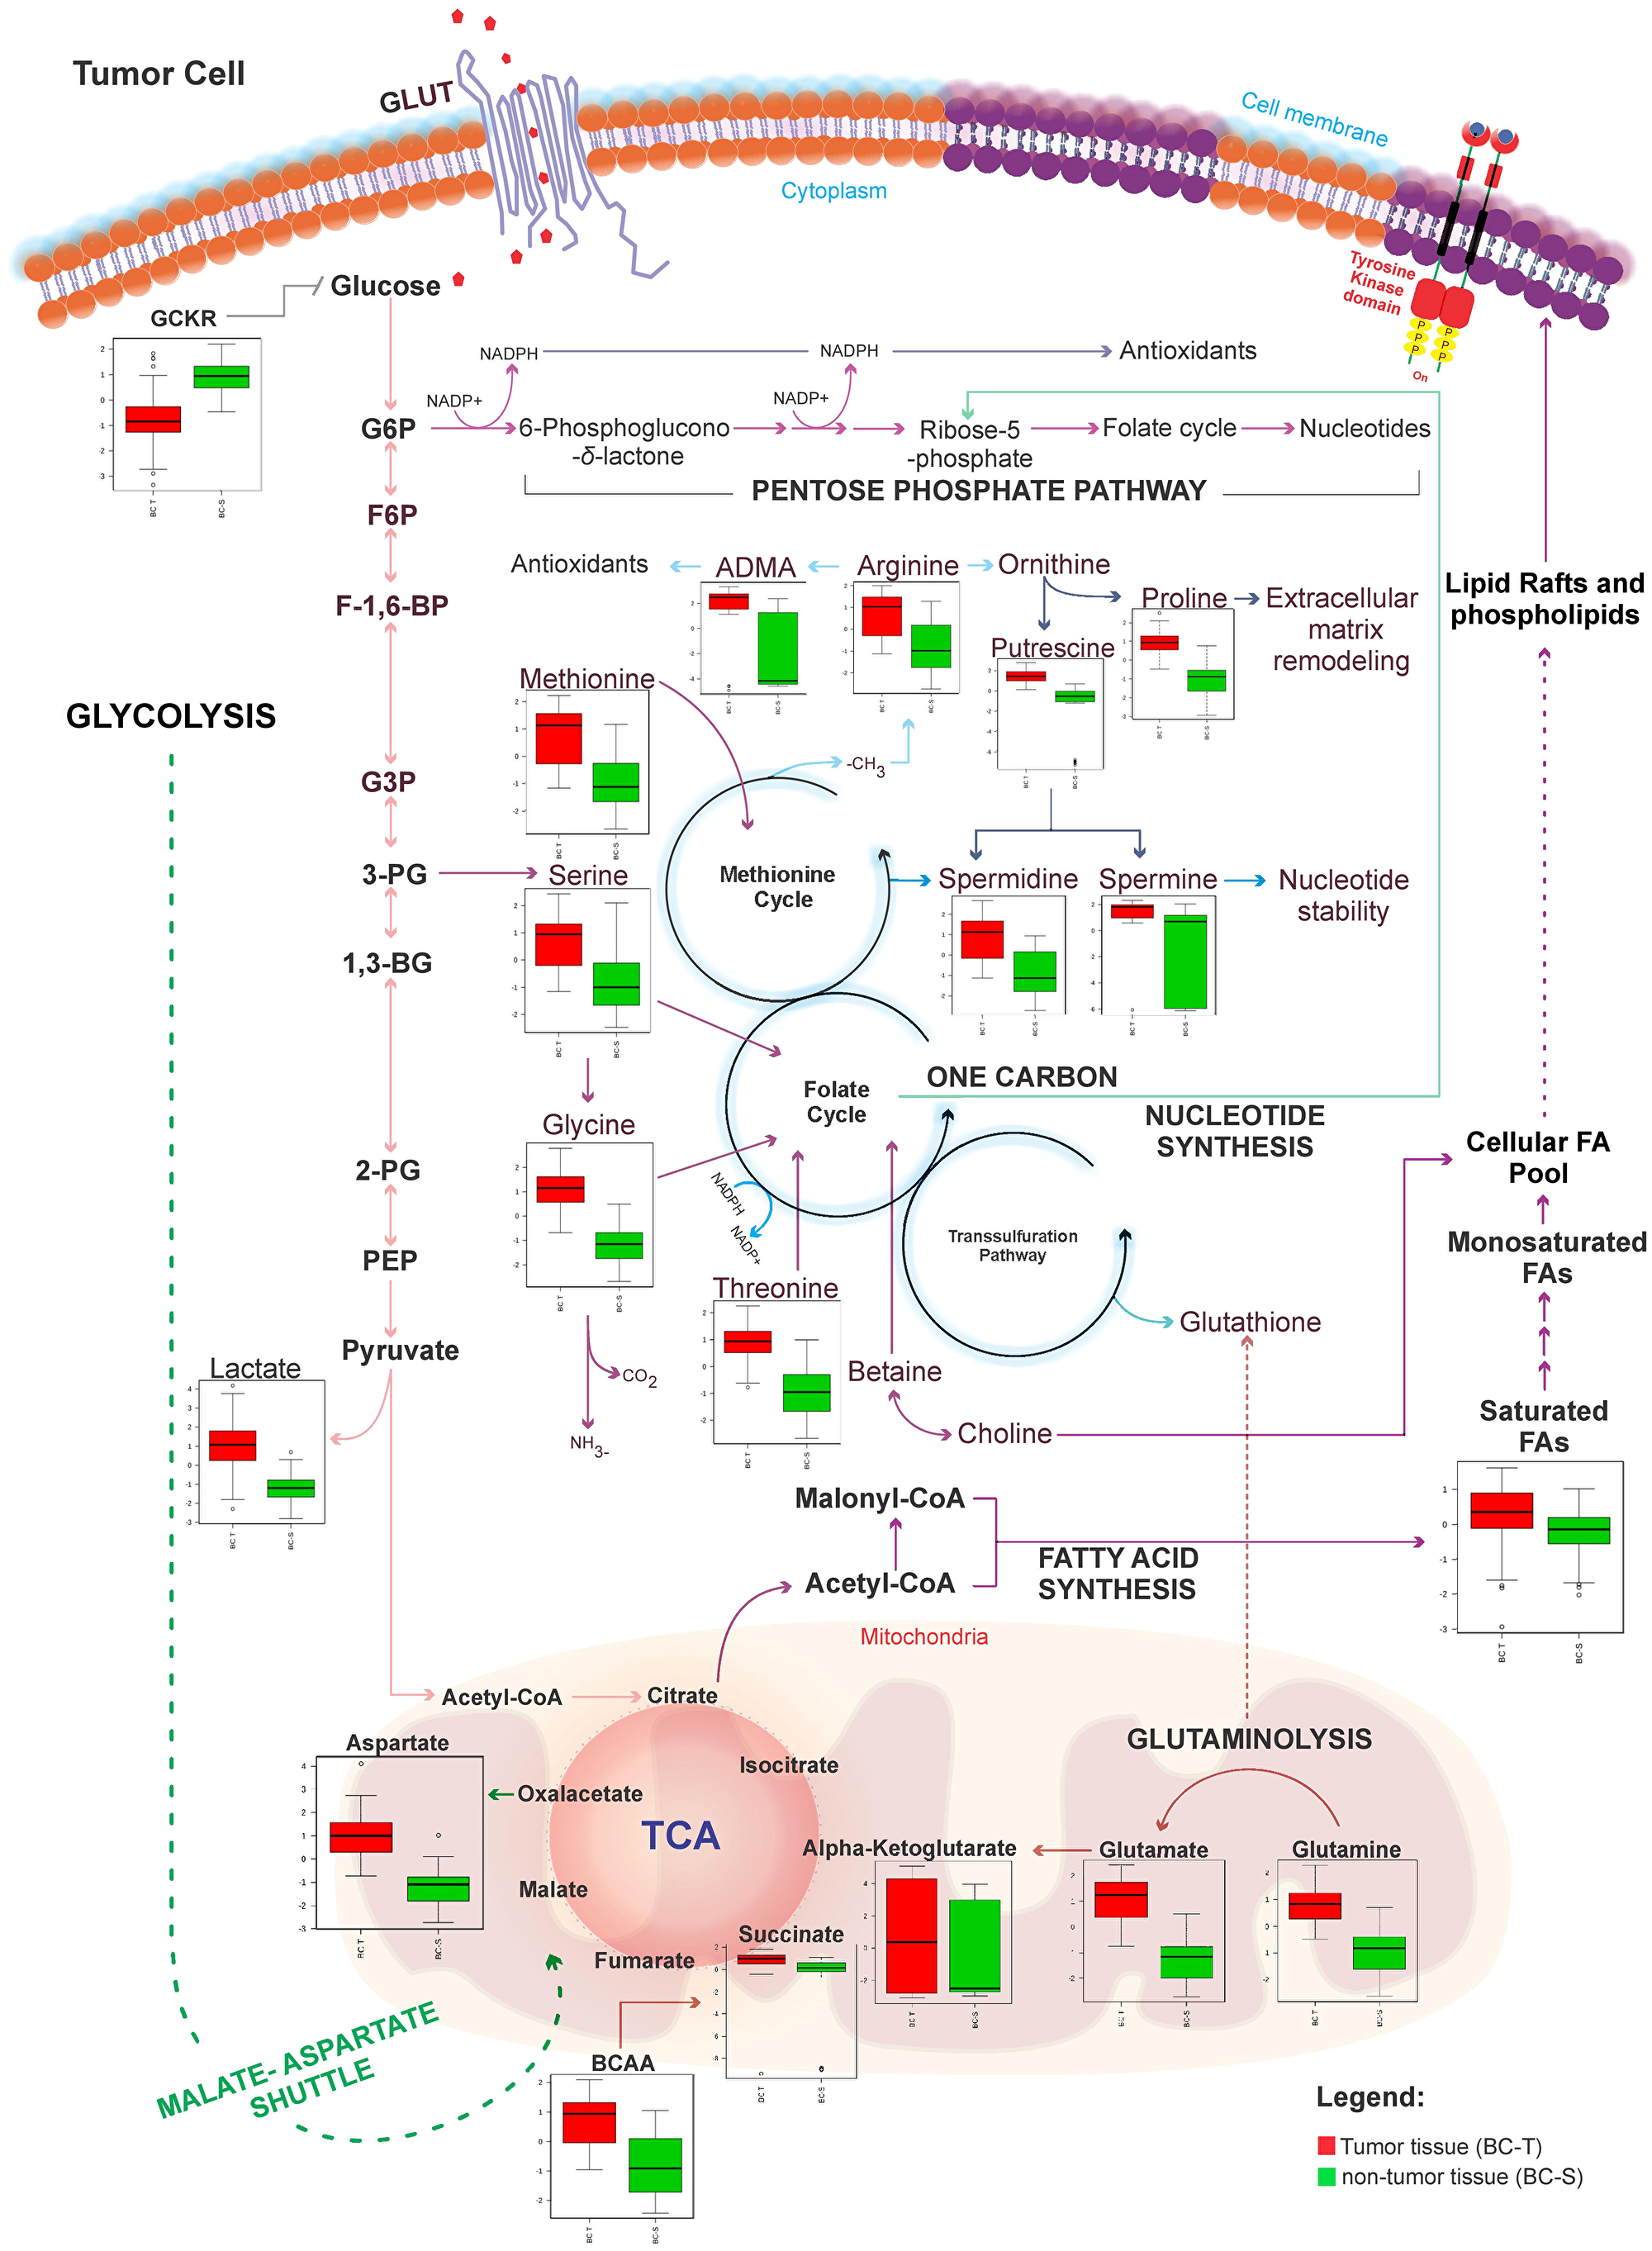 Metabolic network map between IDC and non-tumor adjacent breast tissues according to the main metabolites identified in this study.